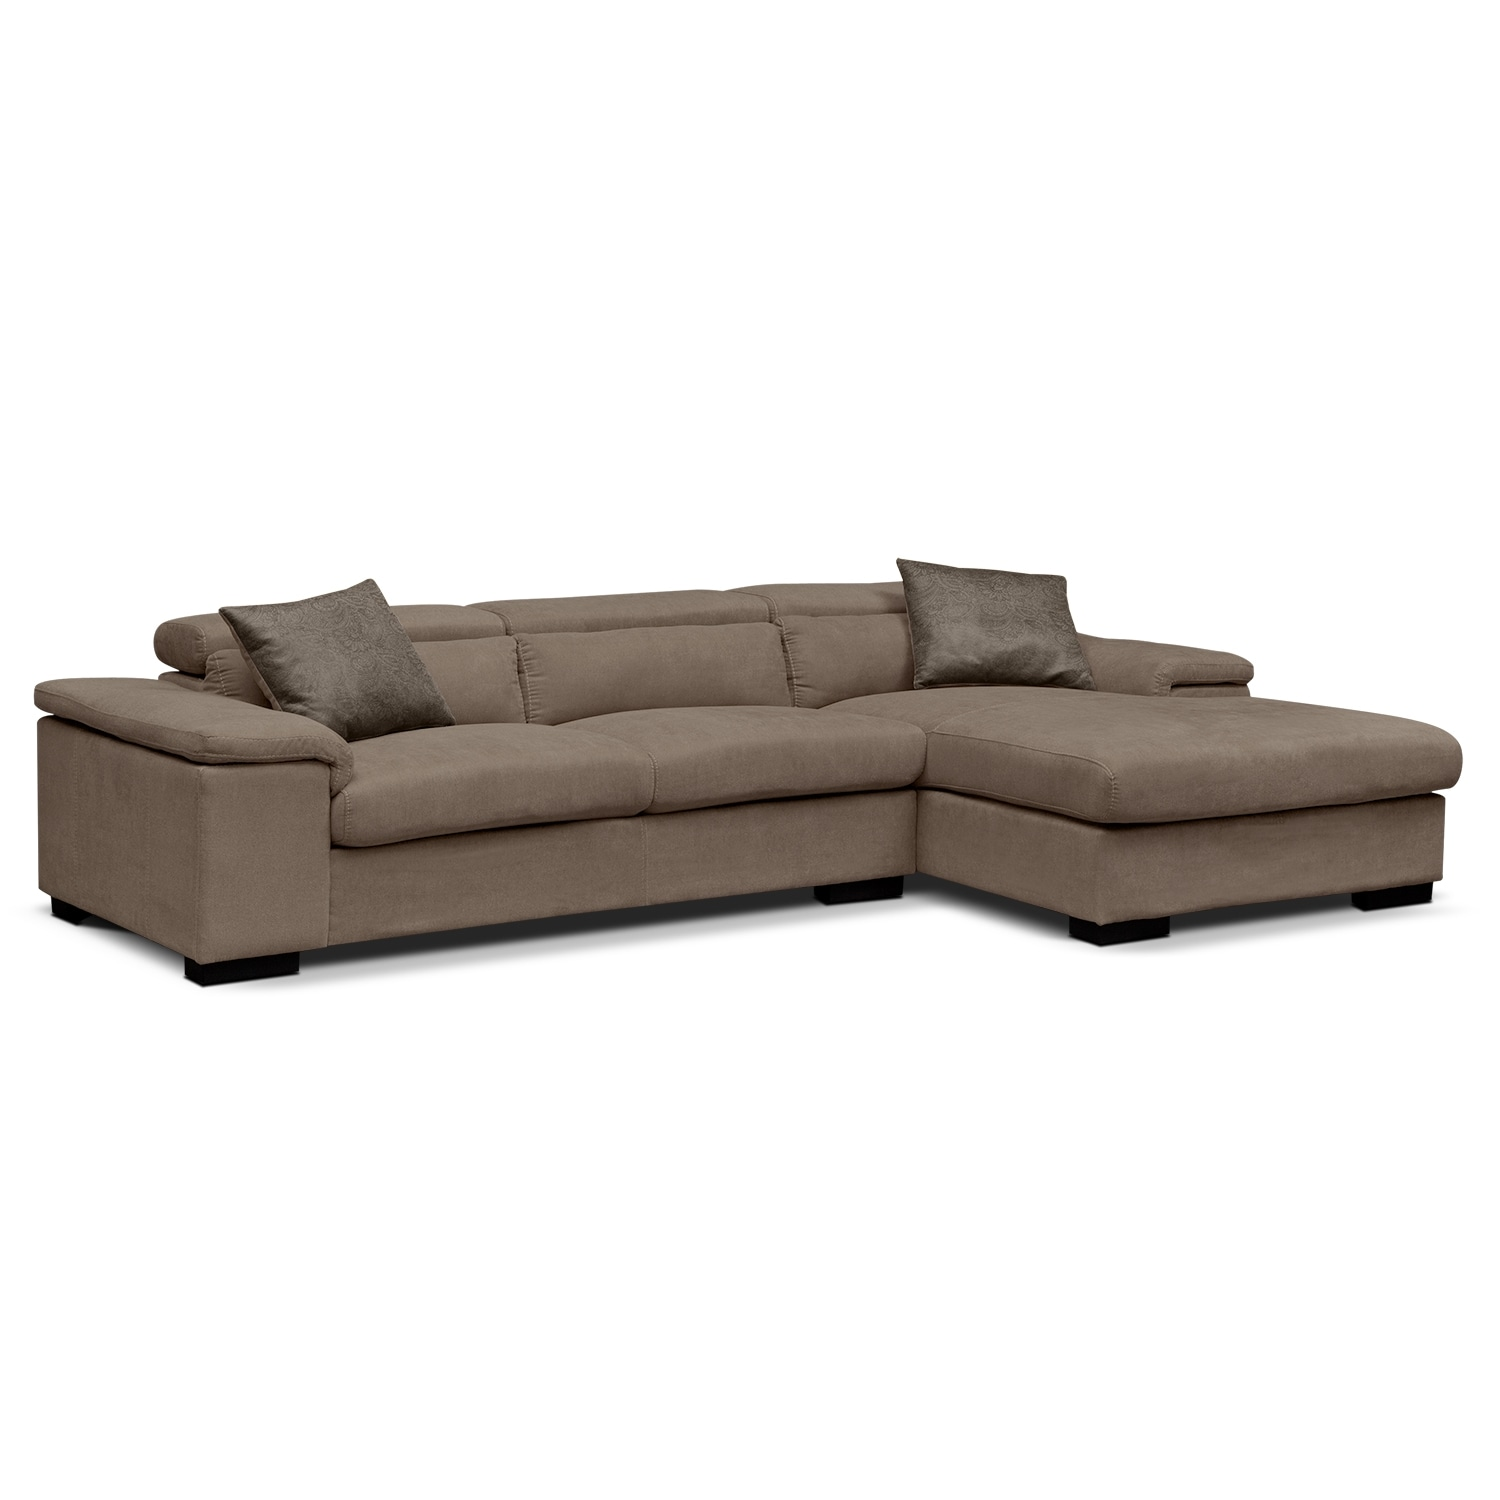 Coming soon valuecitycom for Vista chaise sectional sofa